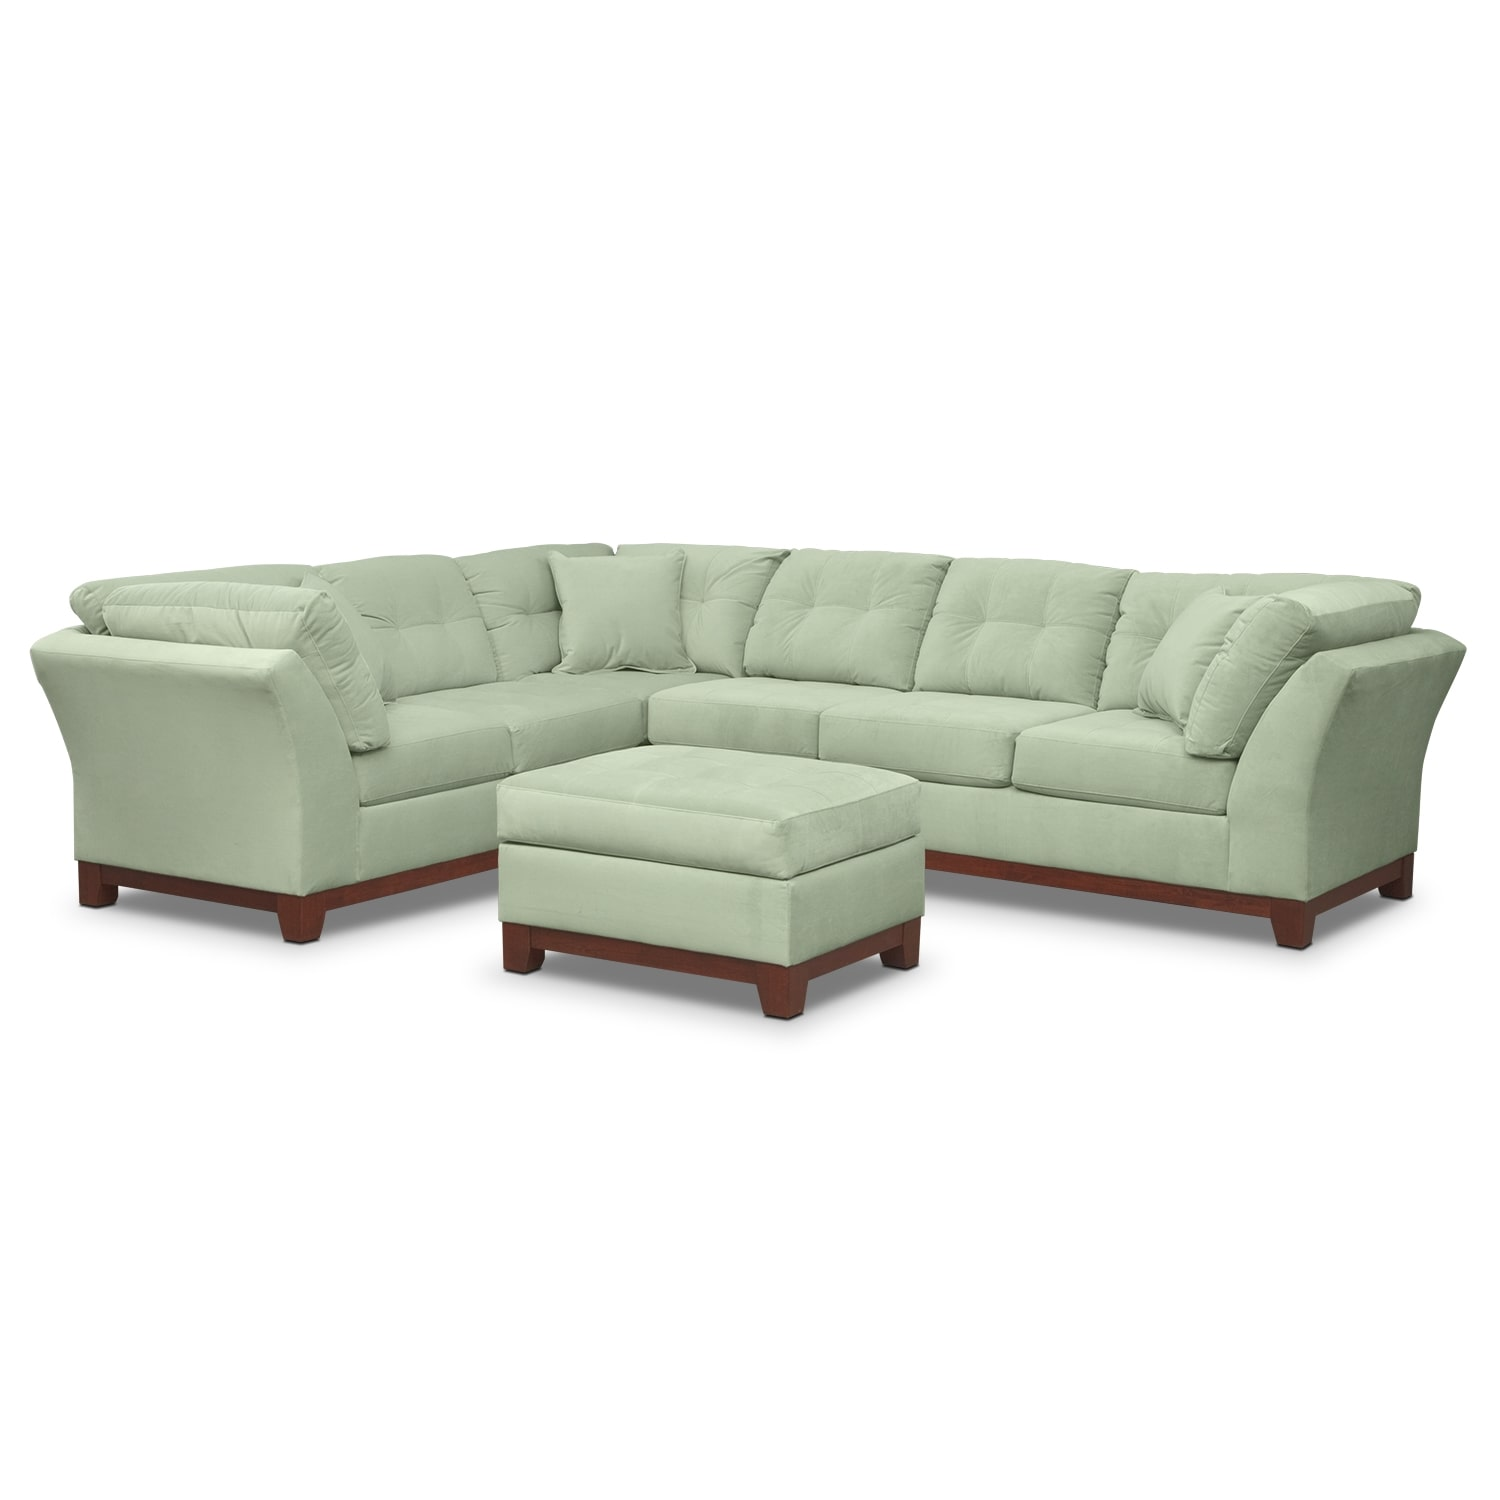 Living Room Furniture - Solace Spa II 2 Pc. Sectional and Ottoman